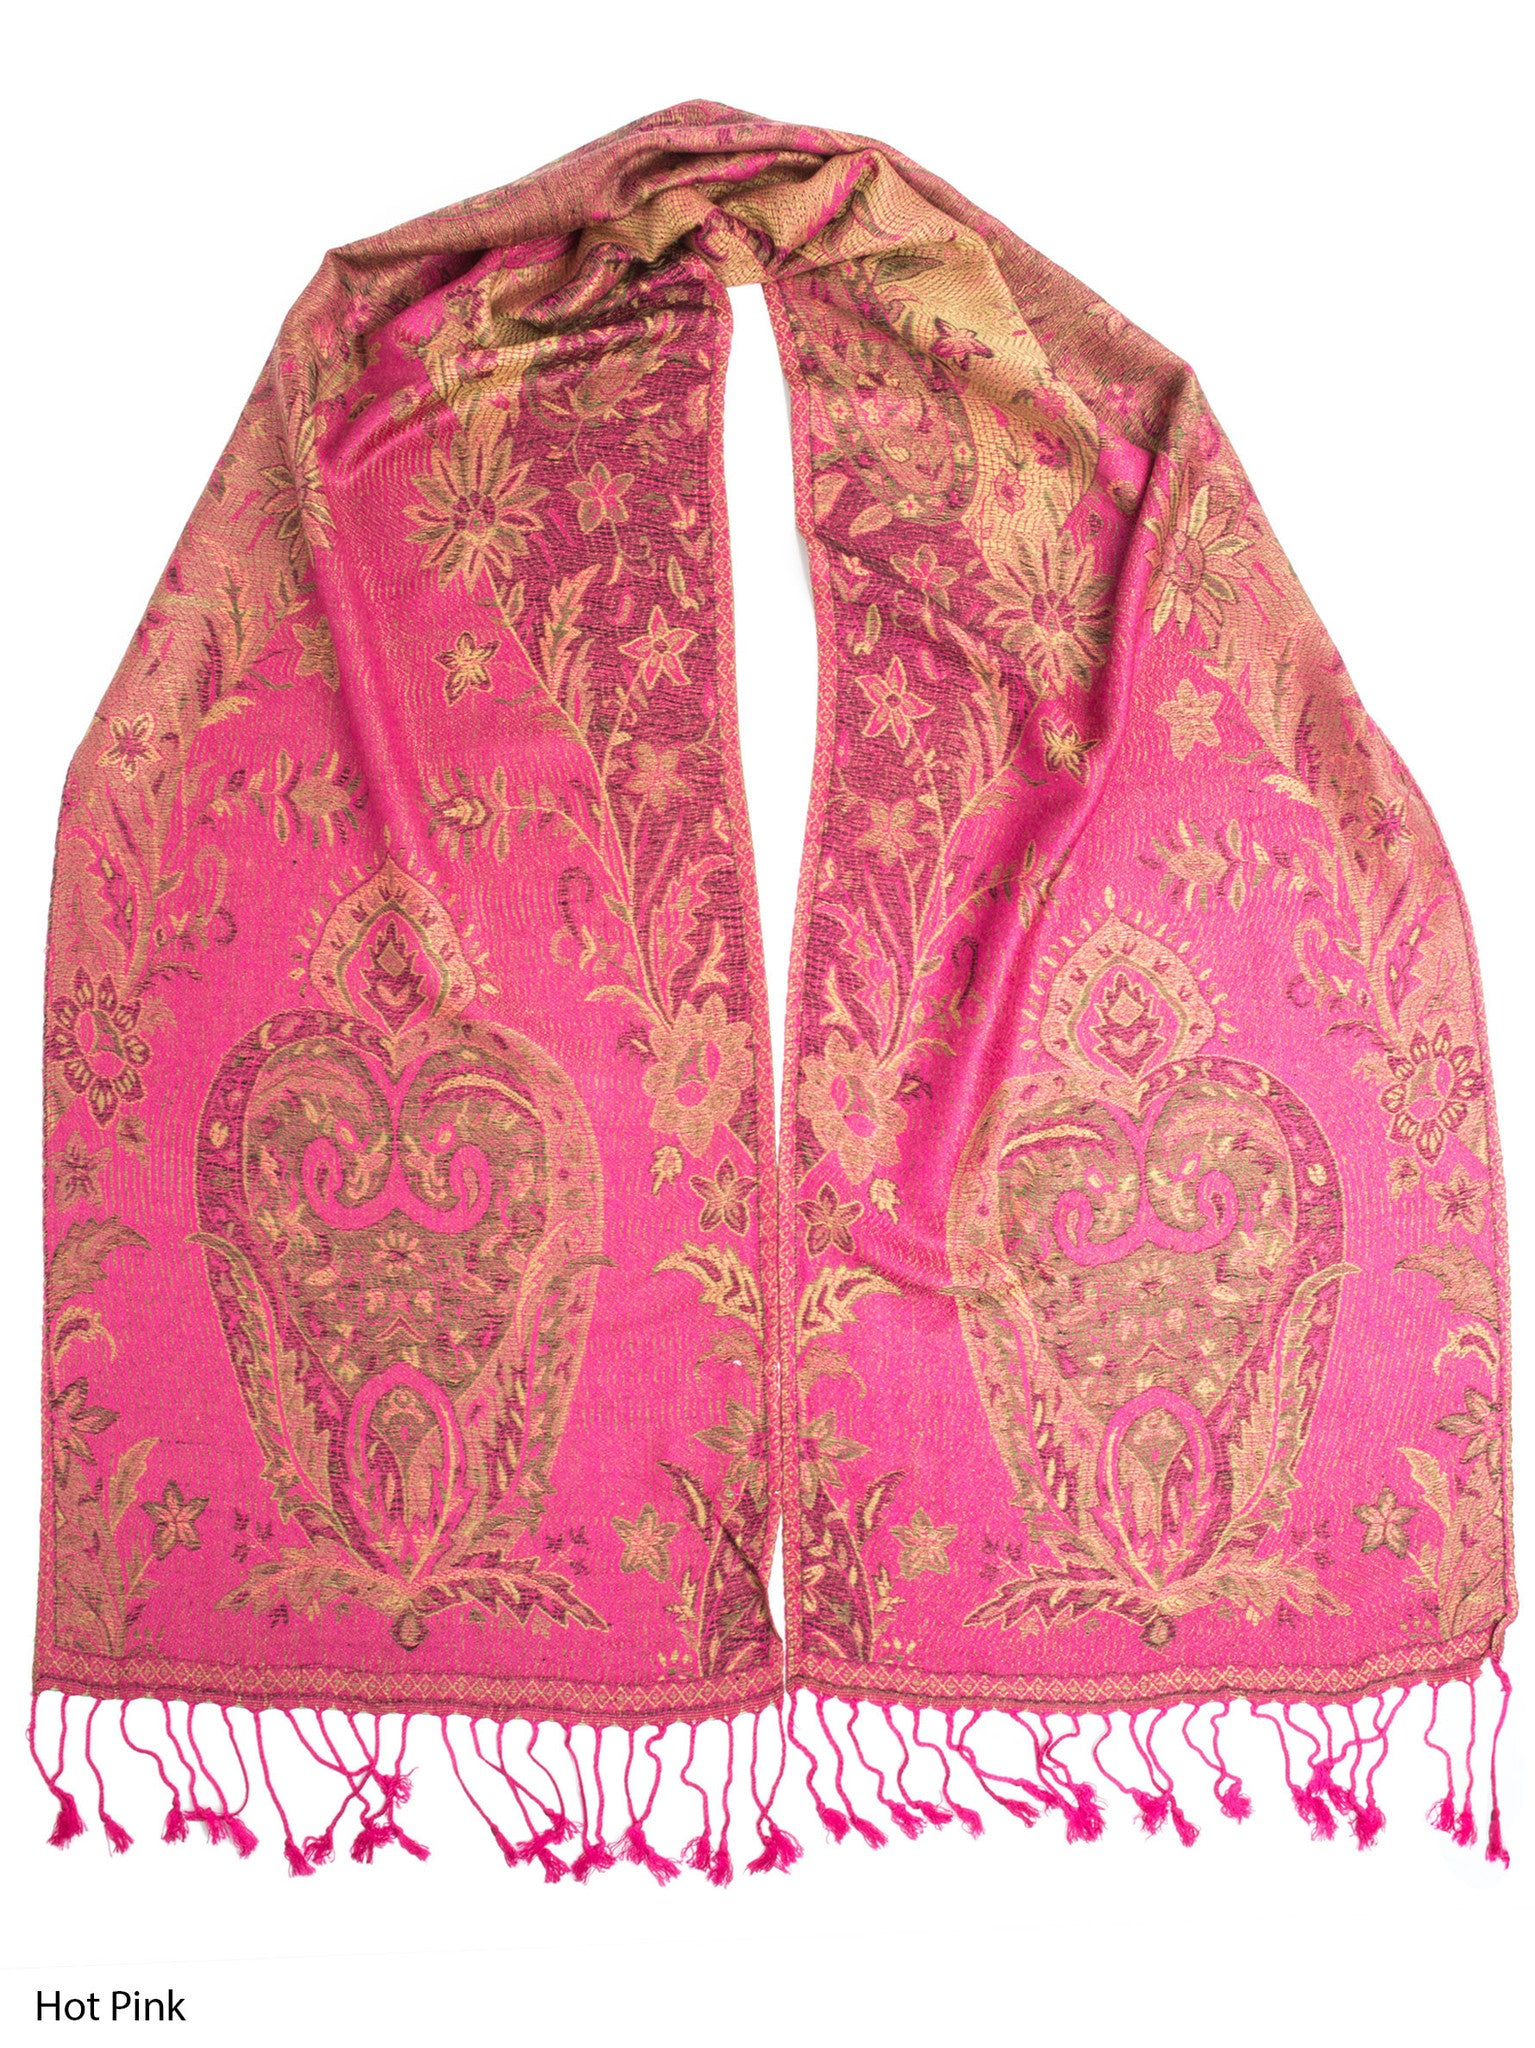 Scarves - Ramaya Scarf, Reversible Pashmina Indian Paisley Traditional Jacquard Scarf -(Hot Pink) Bohomonde  - 11